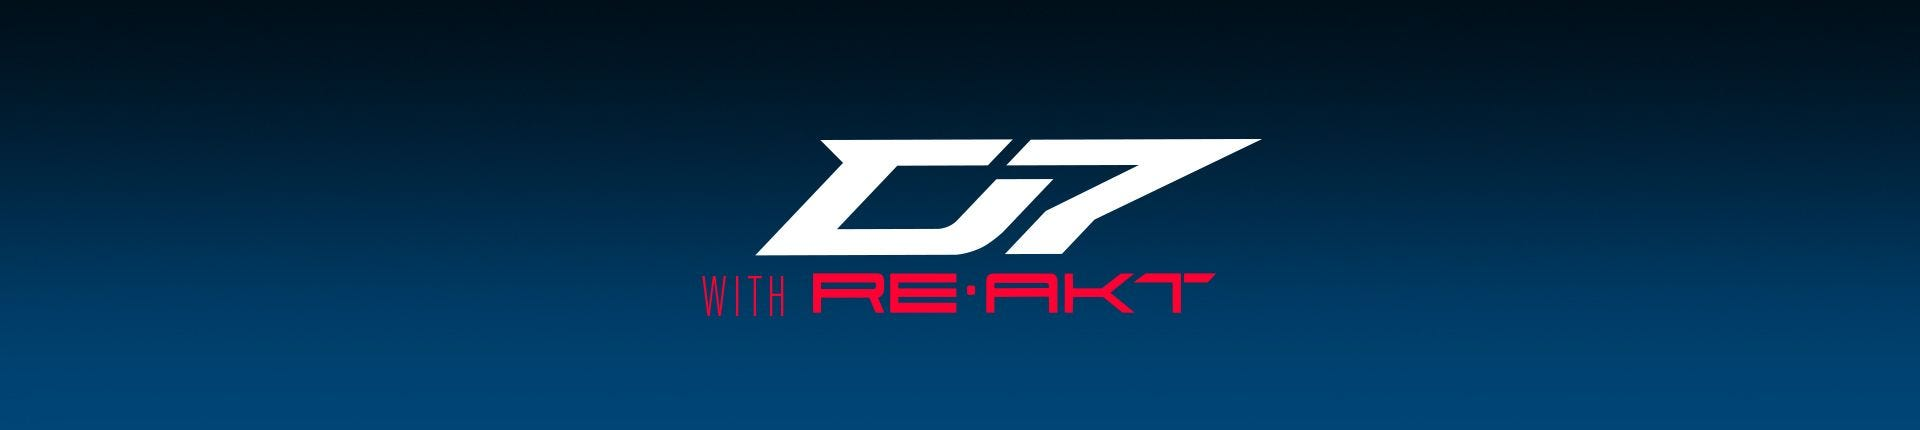 D7 red logo graphic on blue background